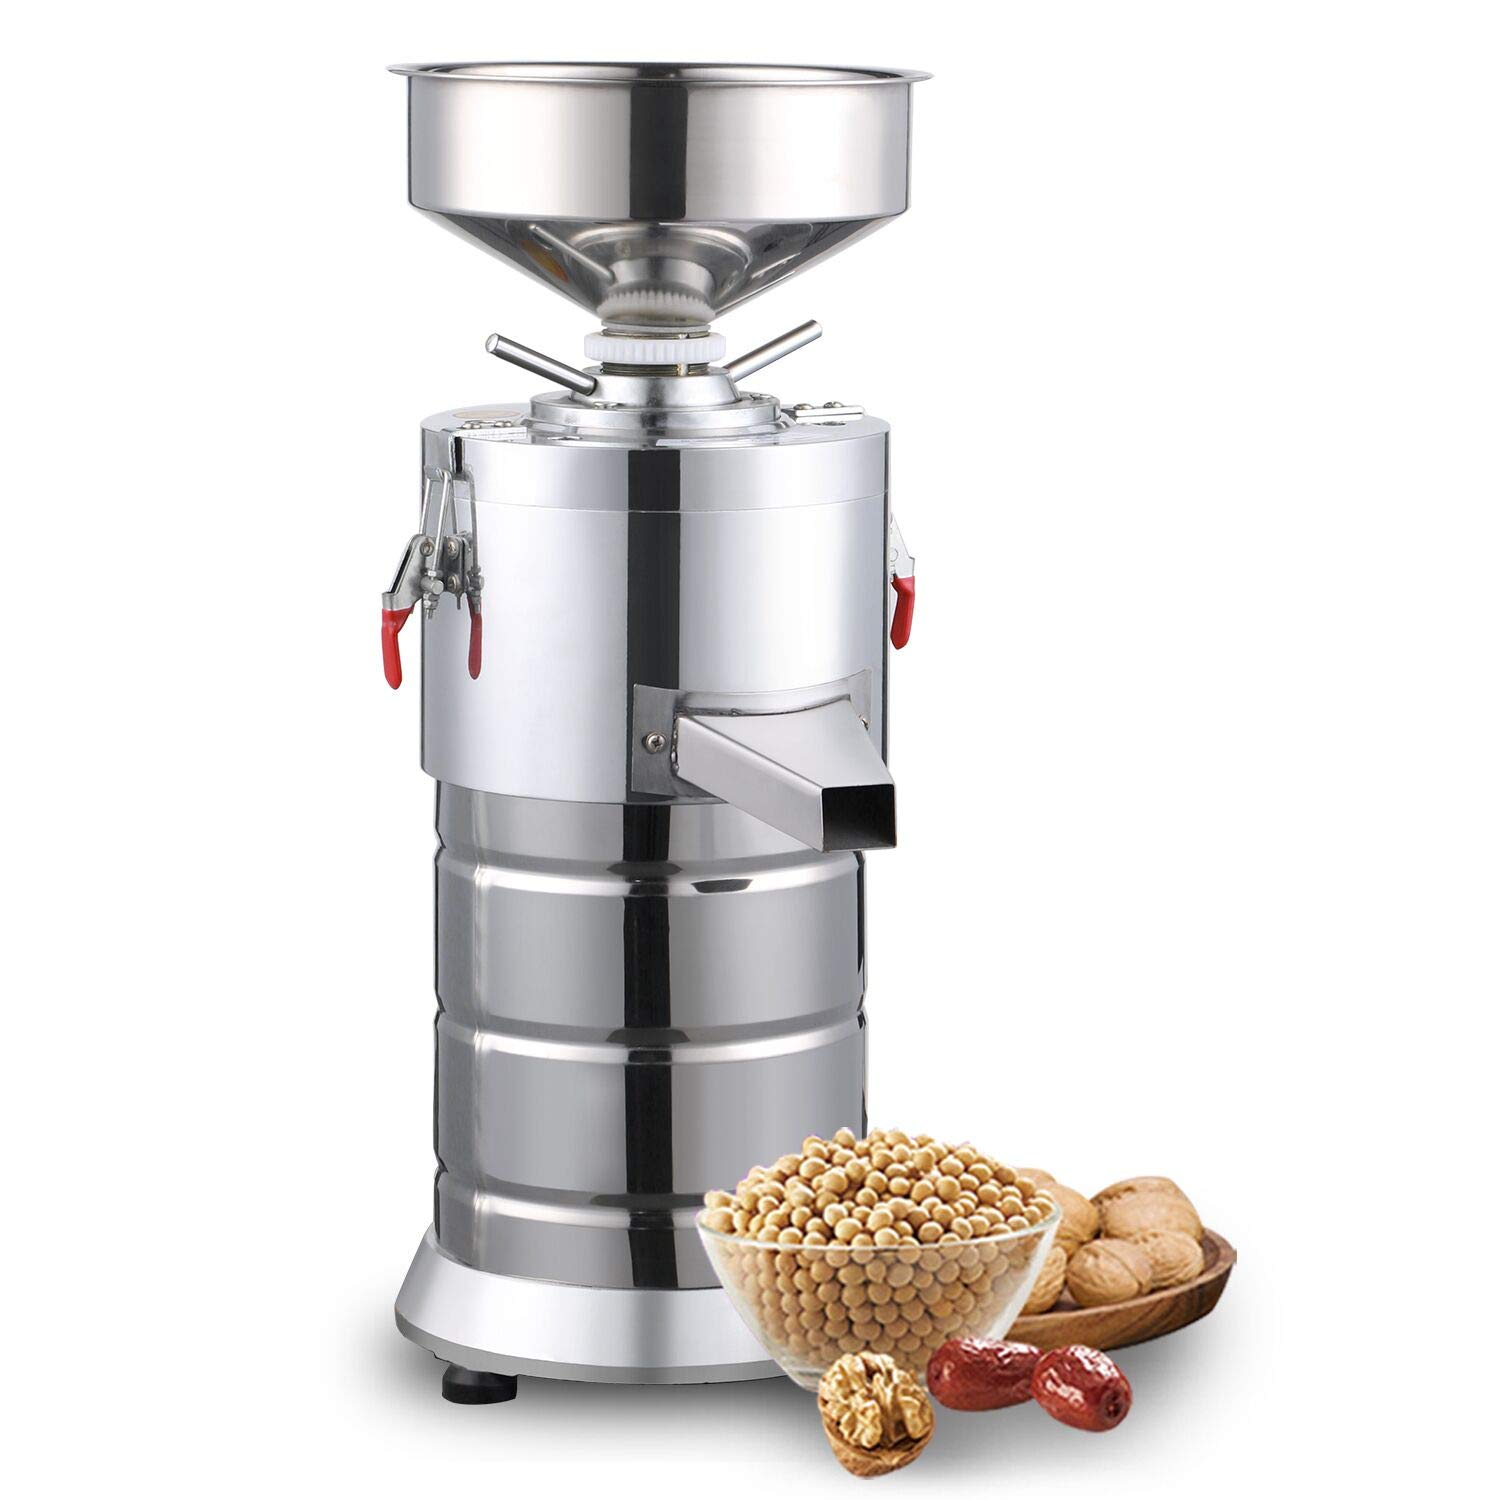 110V Electric Peanut Butter Maker Machine,Commercial Electric Grain Grinder Sesame Sauce and Peanut Sauce Grinder Commercial Peanut butter maker Sesame Butter Milling machine 15kg/h 1100W by Smart Life